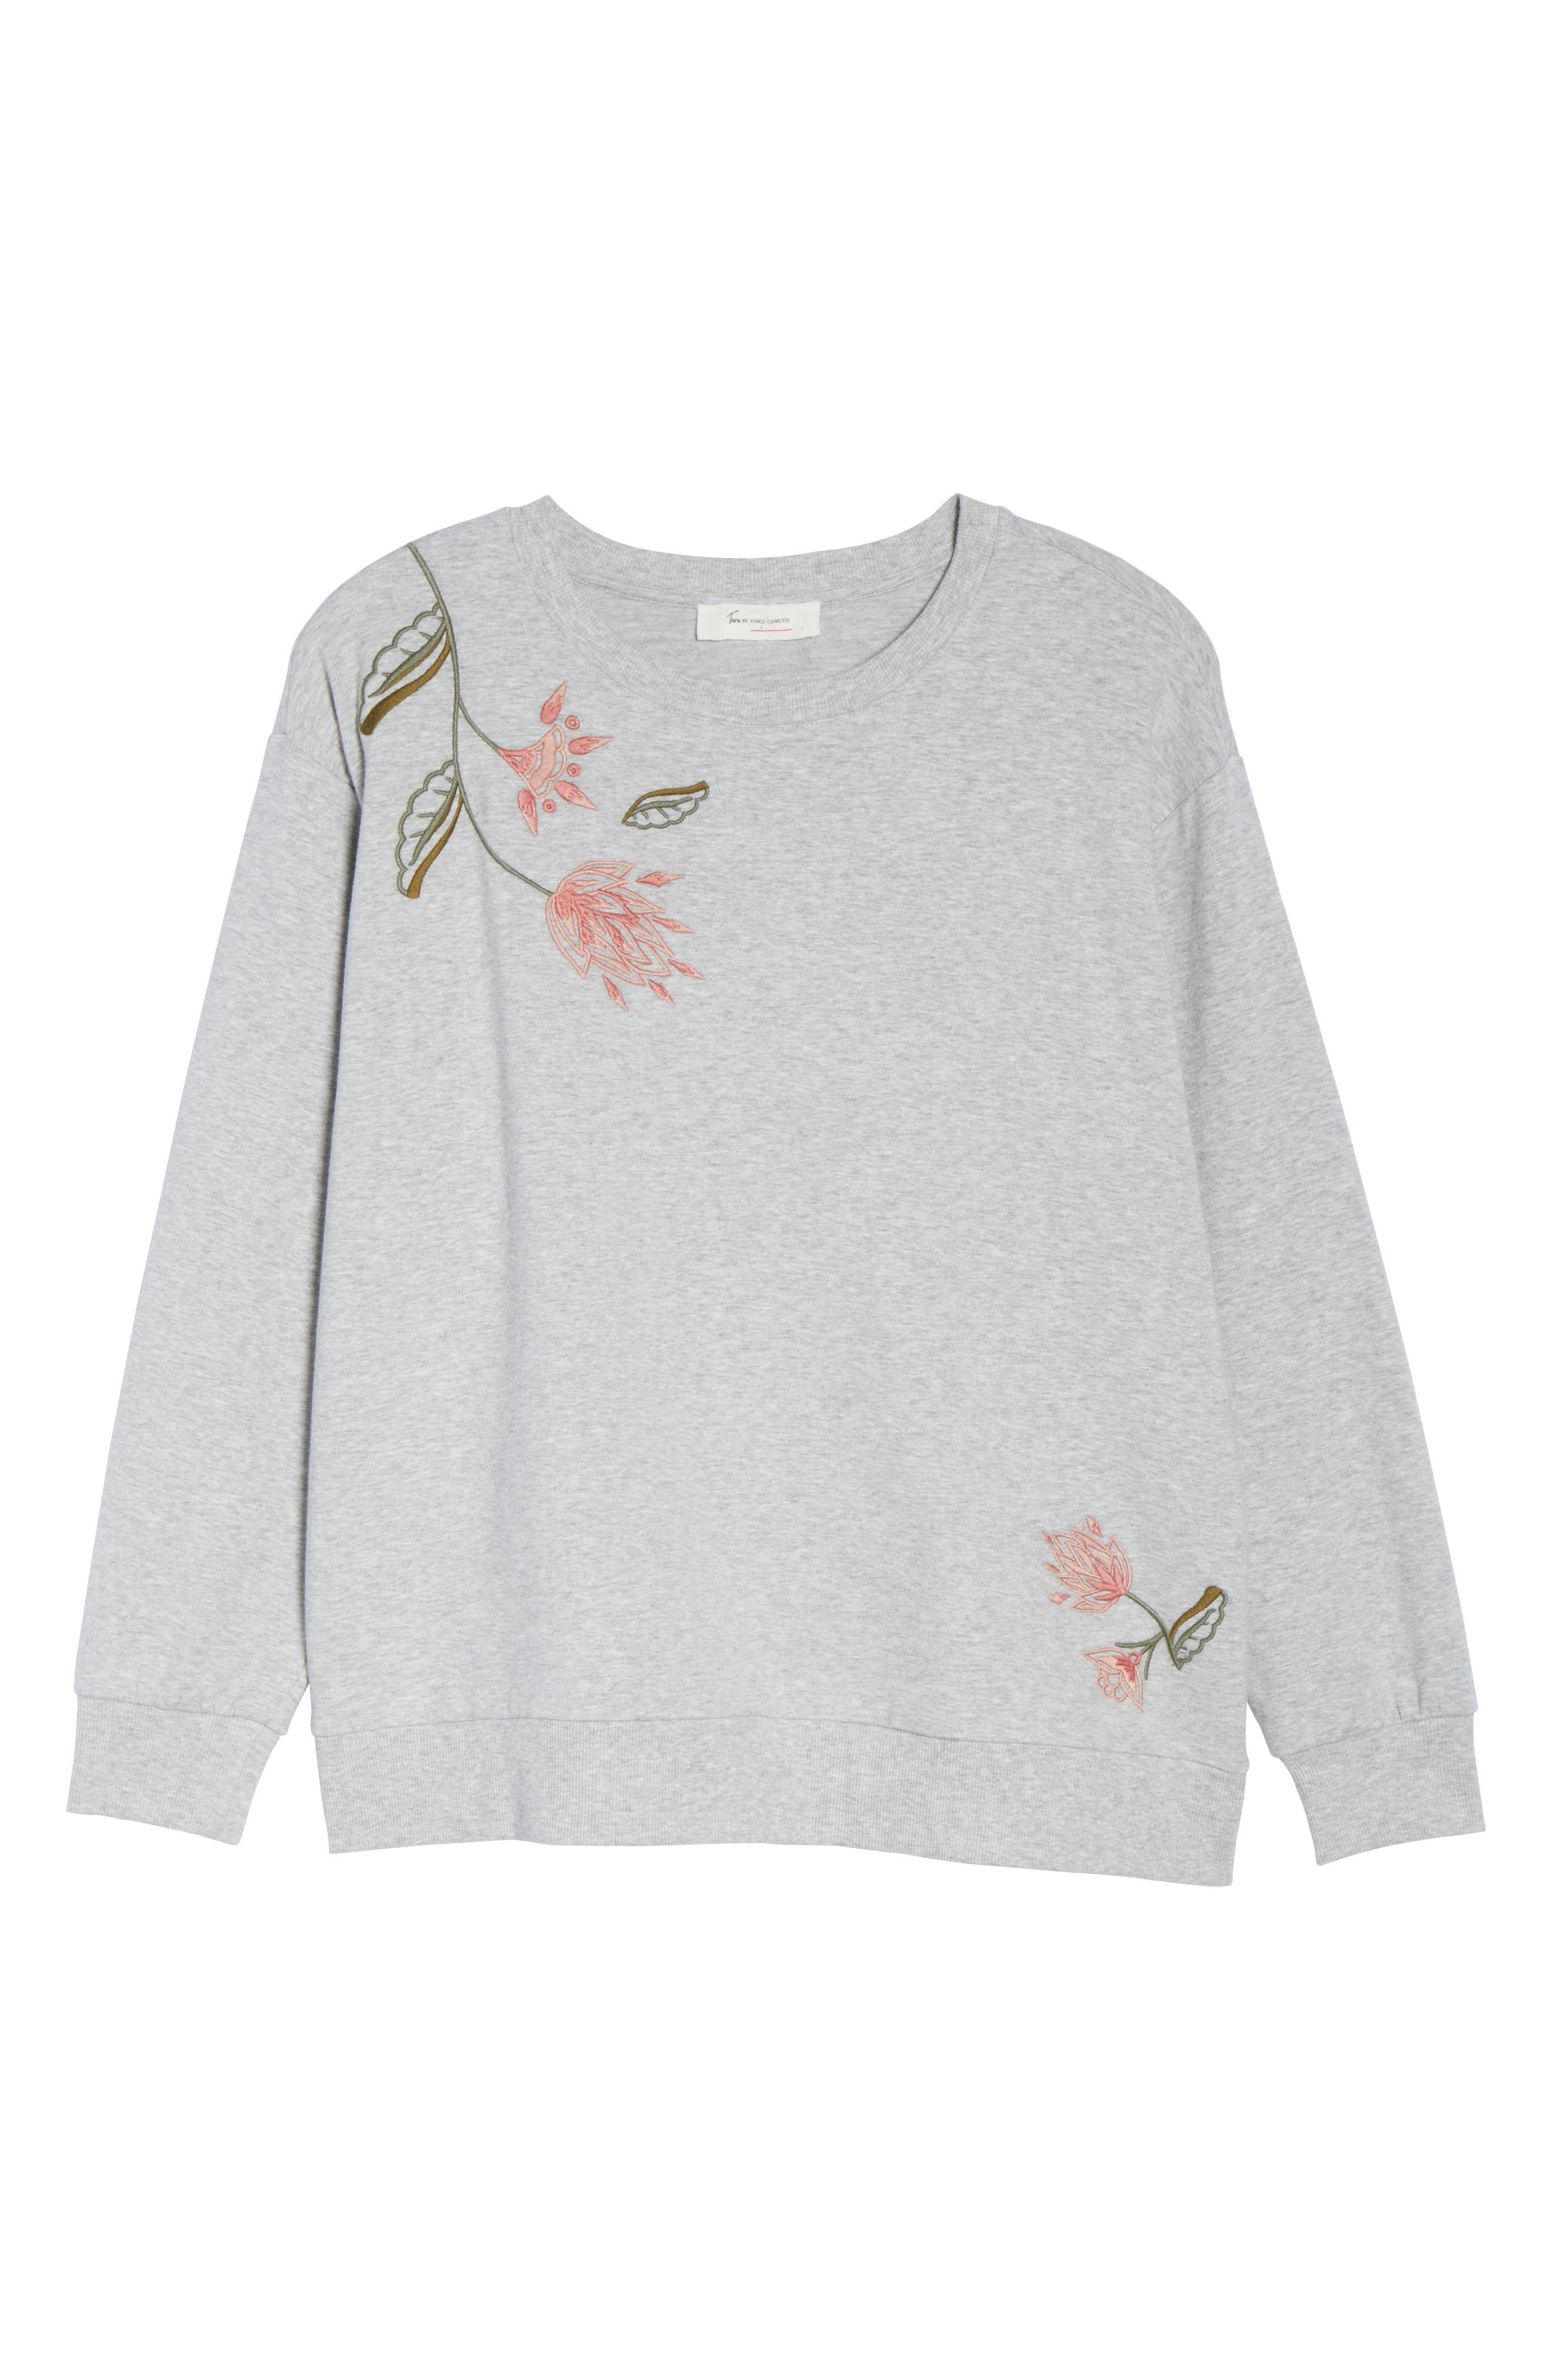 Embroidered Sweatshirt,                             Alternate thumbnail 6, color,